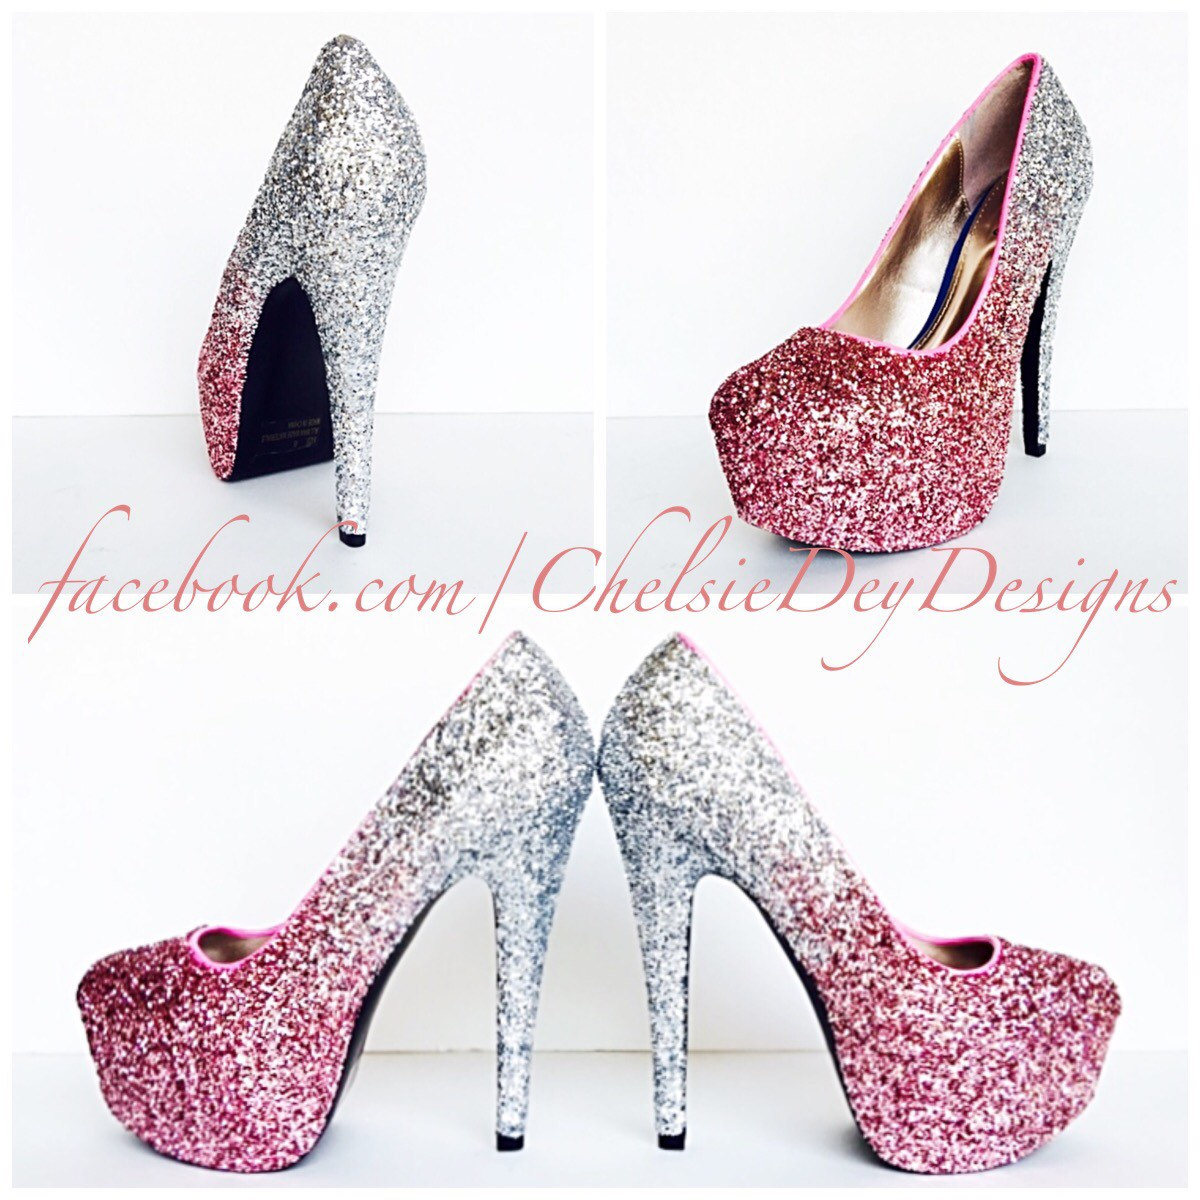 6550d7ea1d10 Glitter High Heels - Blush Pink Pumps - Light Pink Silver Ombre ...